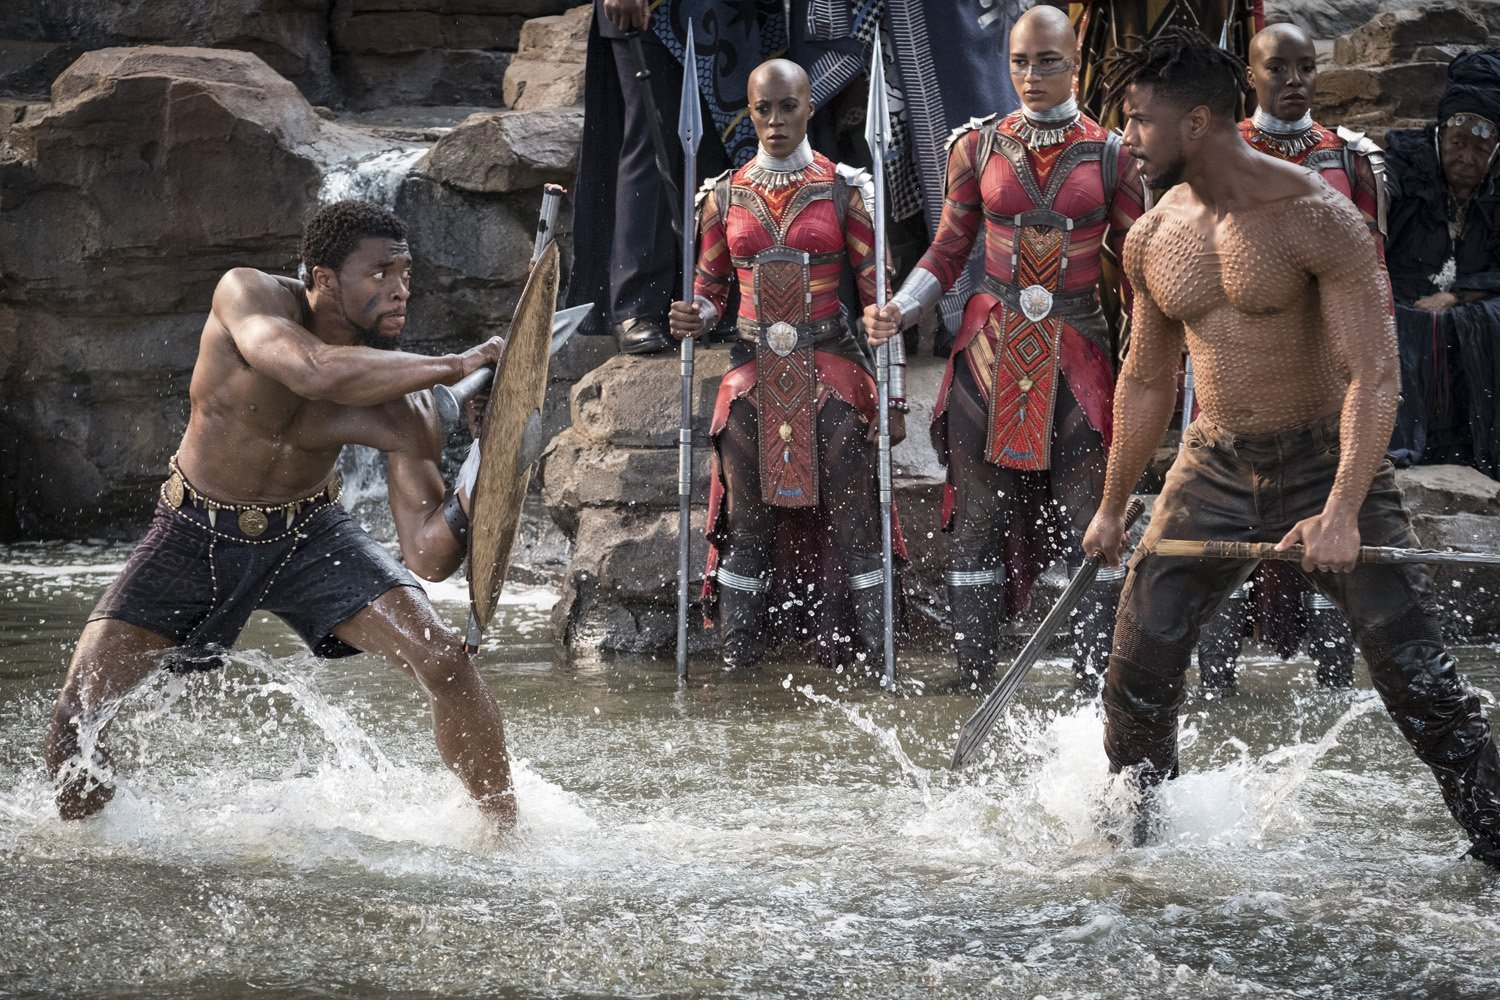 Photo du film Black Panther réalisé par Ryan Coogler avec Chadwick Boseman contre Michael B. Jordan (Warrior Falls)